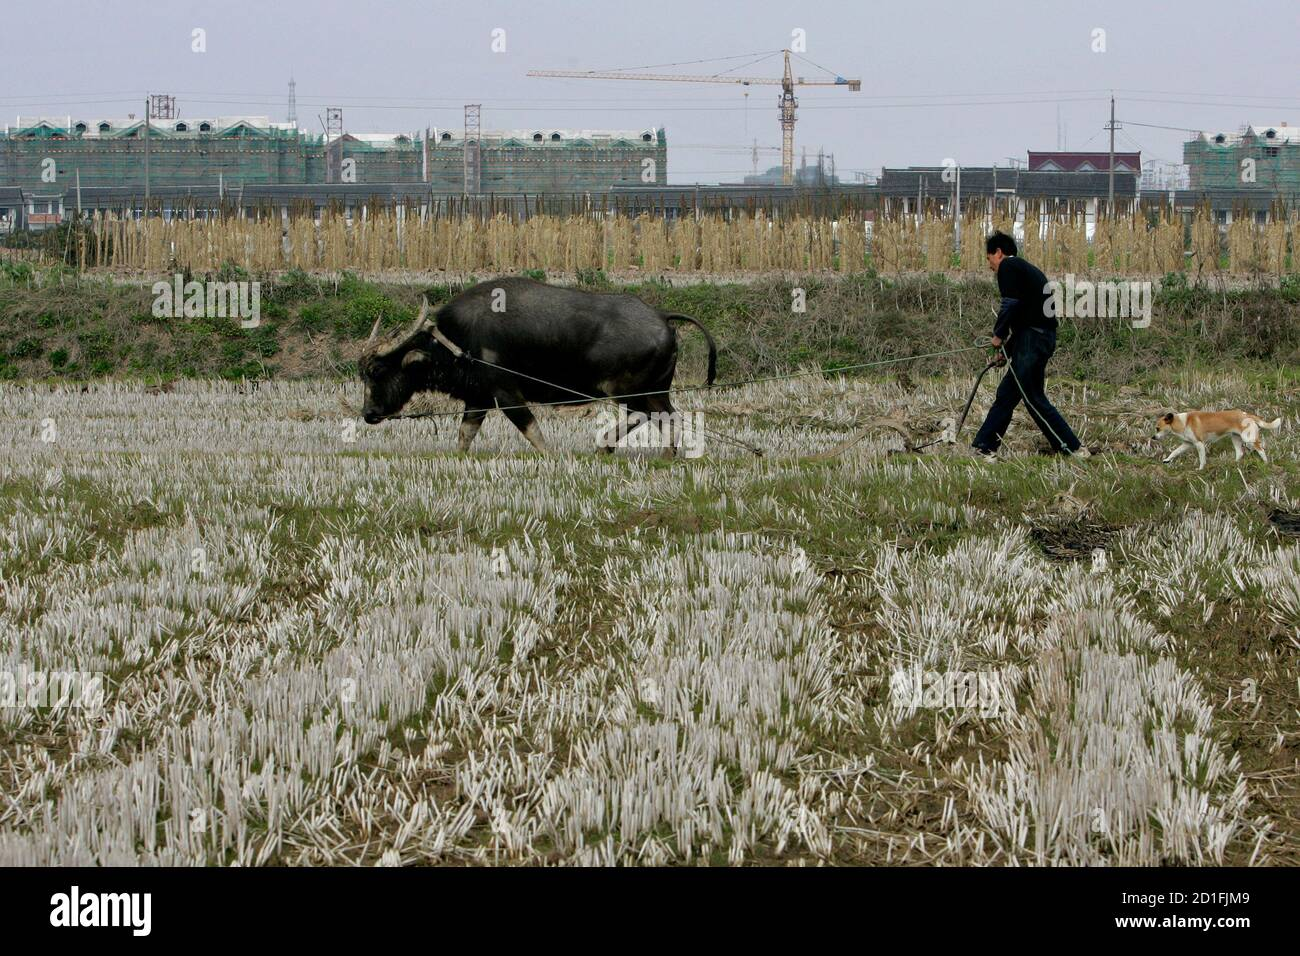 A farmer works on reclaimed land by buffalo in Nanhui district on the outskirts of Shanghai February 28, 2007. Chinese leaders Hu Jintao and Wen Jiabao have made the countryside a political priority. They abolished an ancient grains tax, promised free schooling, and are offering financial aid and subsidies for seeds and infrastructure. To match feature CHINA-PARLIAMENT-COUNTRYSIDE     REUTERS/Aly Song (CHINA) Stock Photo